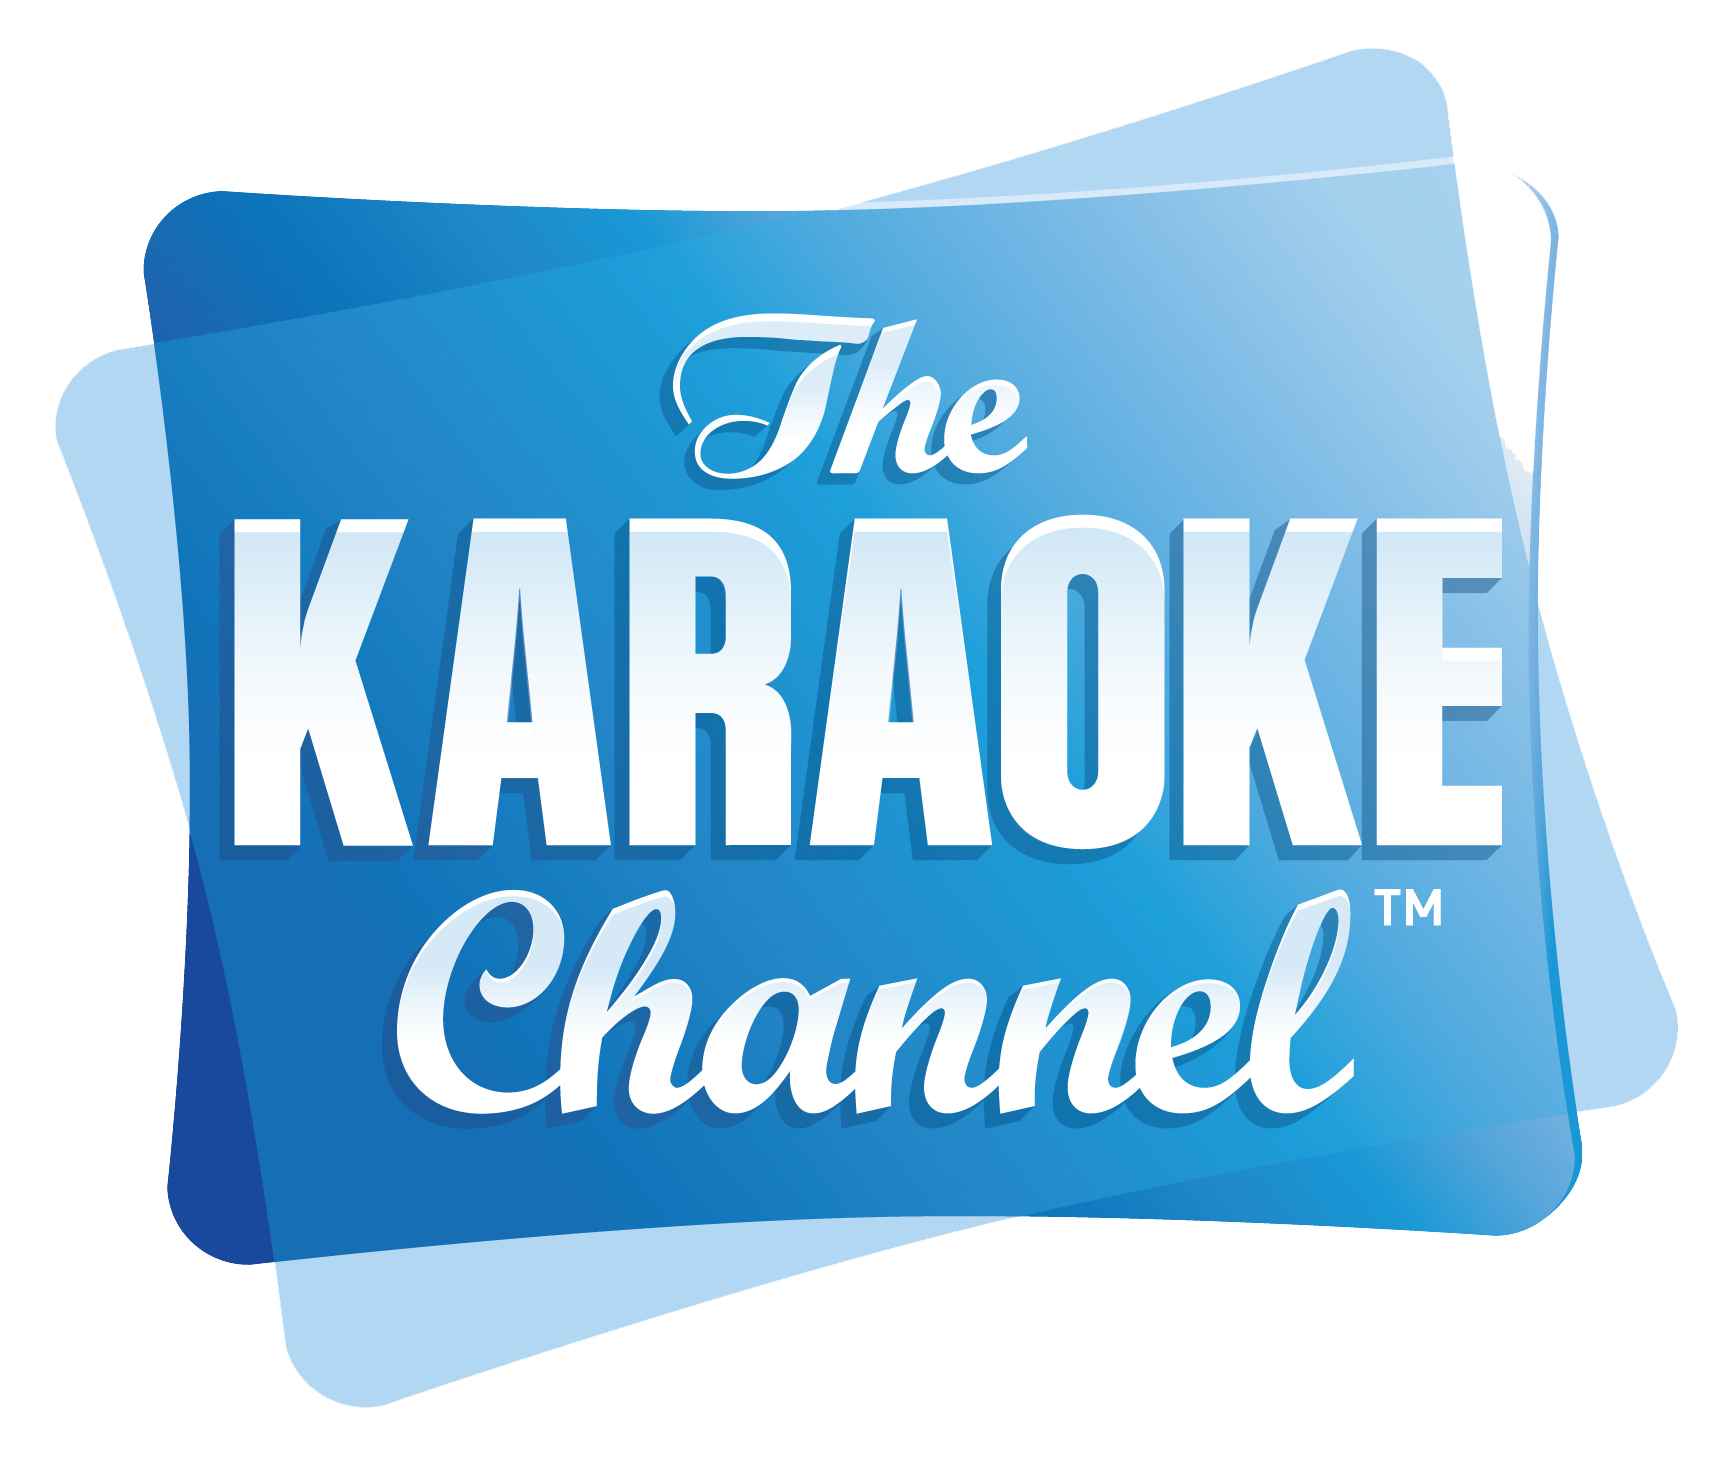 Karaoke Channel Coupon Code